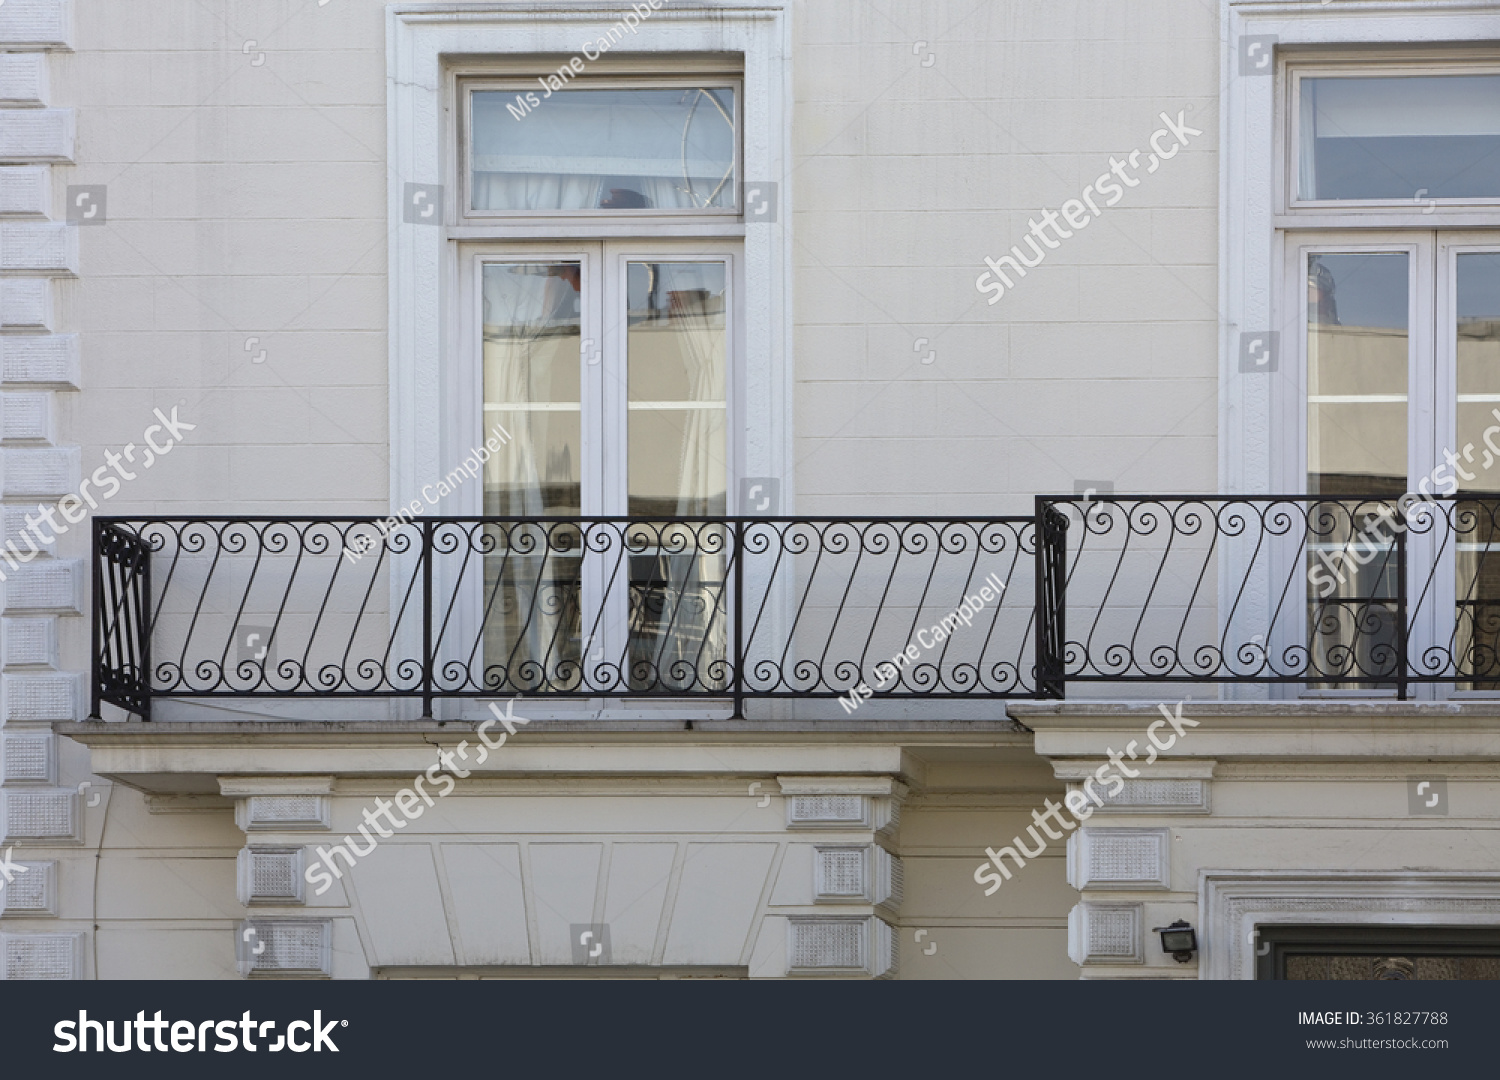 Wrought iron railing a repeating simple pattern sets up an image of elegance on this